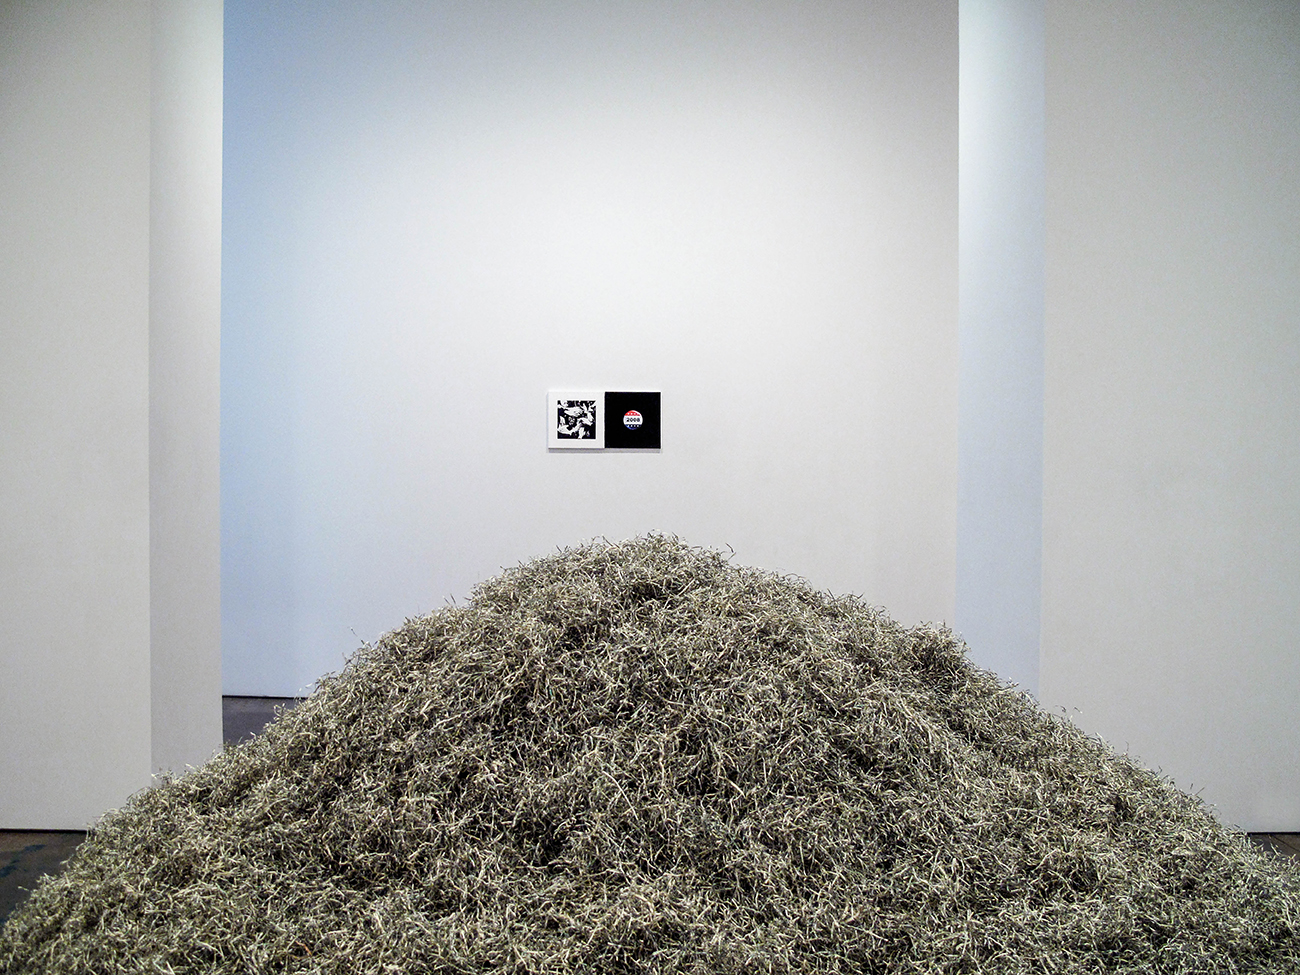 "2009   One million dollars of shredded currency was used as the medium for a series of 10 sculptures by Sebastian ErraZuriz and Thomas McDonell. Each of the 10 sculptures was offered for sale after the New York exhibition, at the price of 100,000 dollars per sculpture.     ErraZuriz and McDonell purchased the shredded bills from the United States Bureau of Printing and Engraving, and created the work after forming a partnership and entering into a contract that guaranteed appropriate distribution of all income derived from the Million Dollar Project.     The sales from the sculptures were intended to allow the artists to recover the hundreds of thousands of dollars invested in their art education and to palliate future unemployment.   The United States Treasury Department, by way of the Bureau of Printing and Engraving, stipulates that currency residue cannot be sold as ""commercial art"".  ErraZuriz and McDonell insist, however, on their right of expression with artistic purpose and further on their right to make a living from their art."